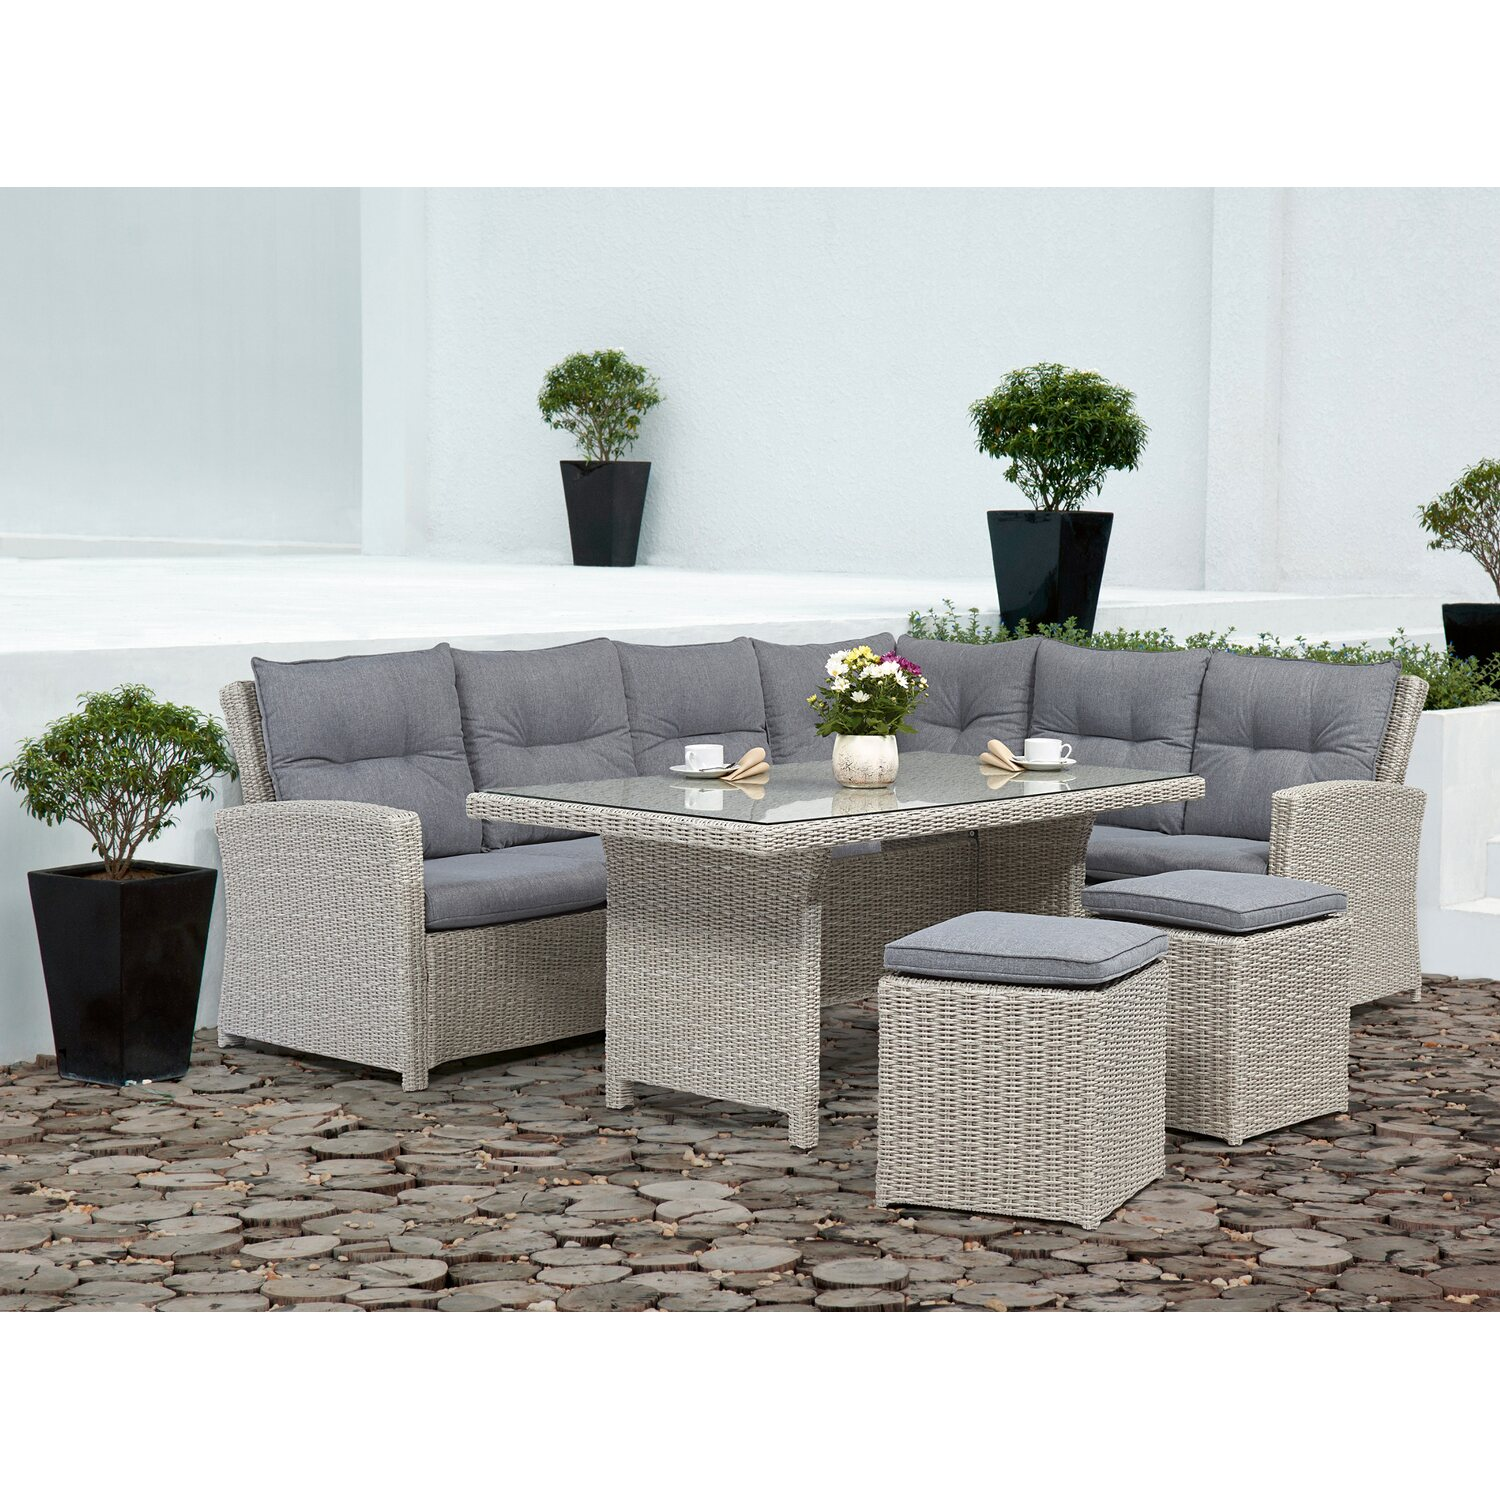 rattan gartenmbel ausverkauf great balkon teppich gnstig avec gartenmbel rattan ausverkauf. Black Bedroom Furniture Sets. Home Design Ideas